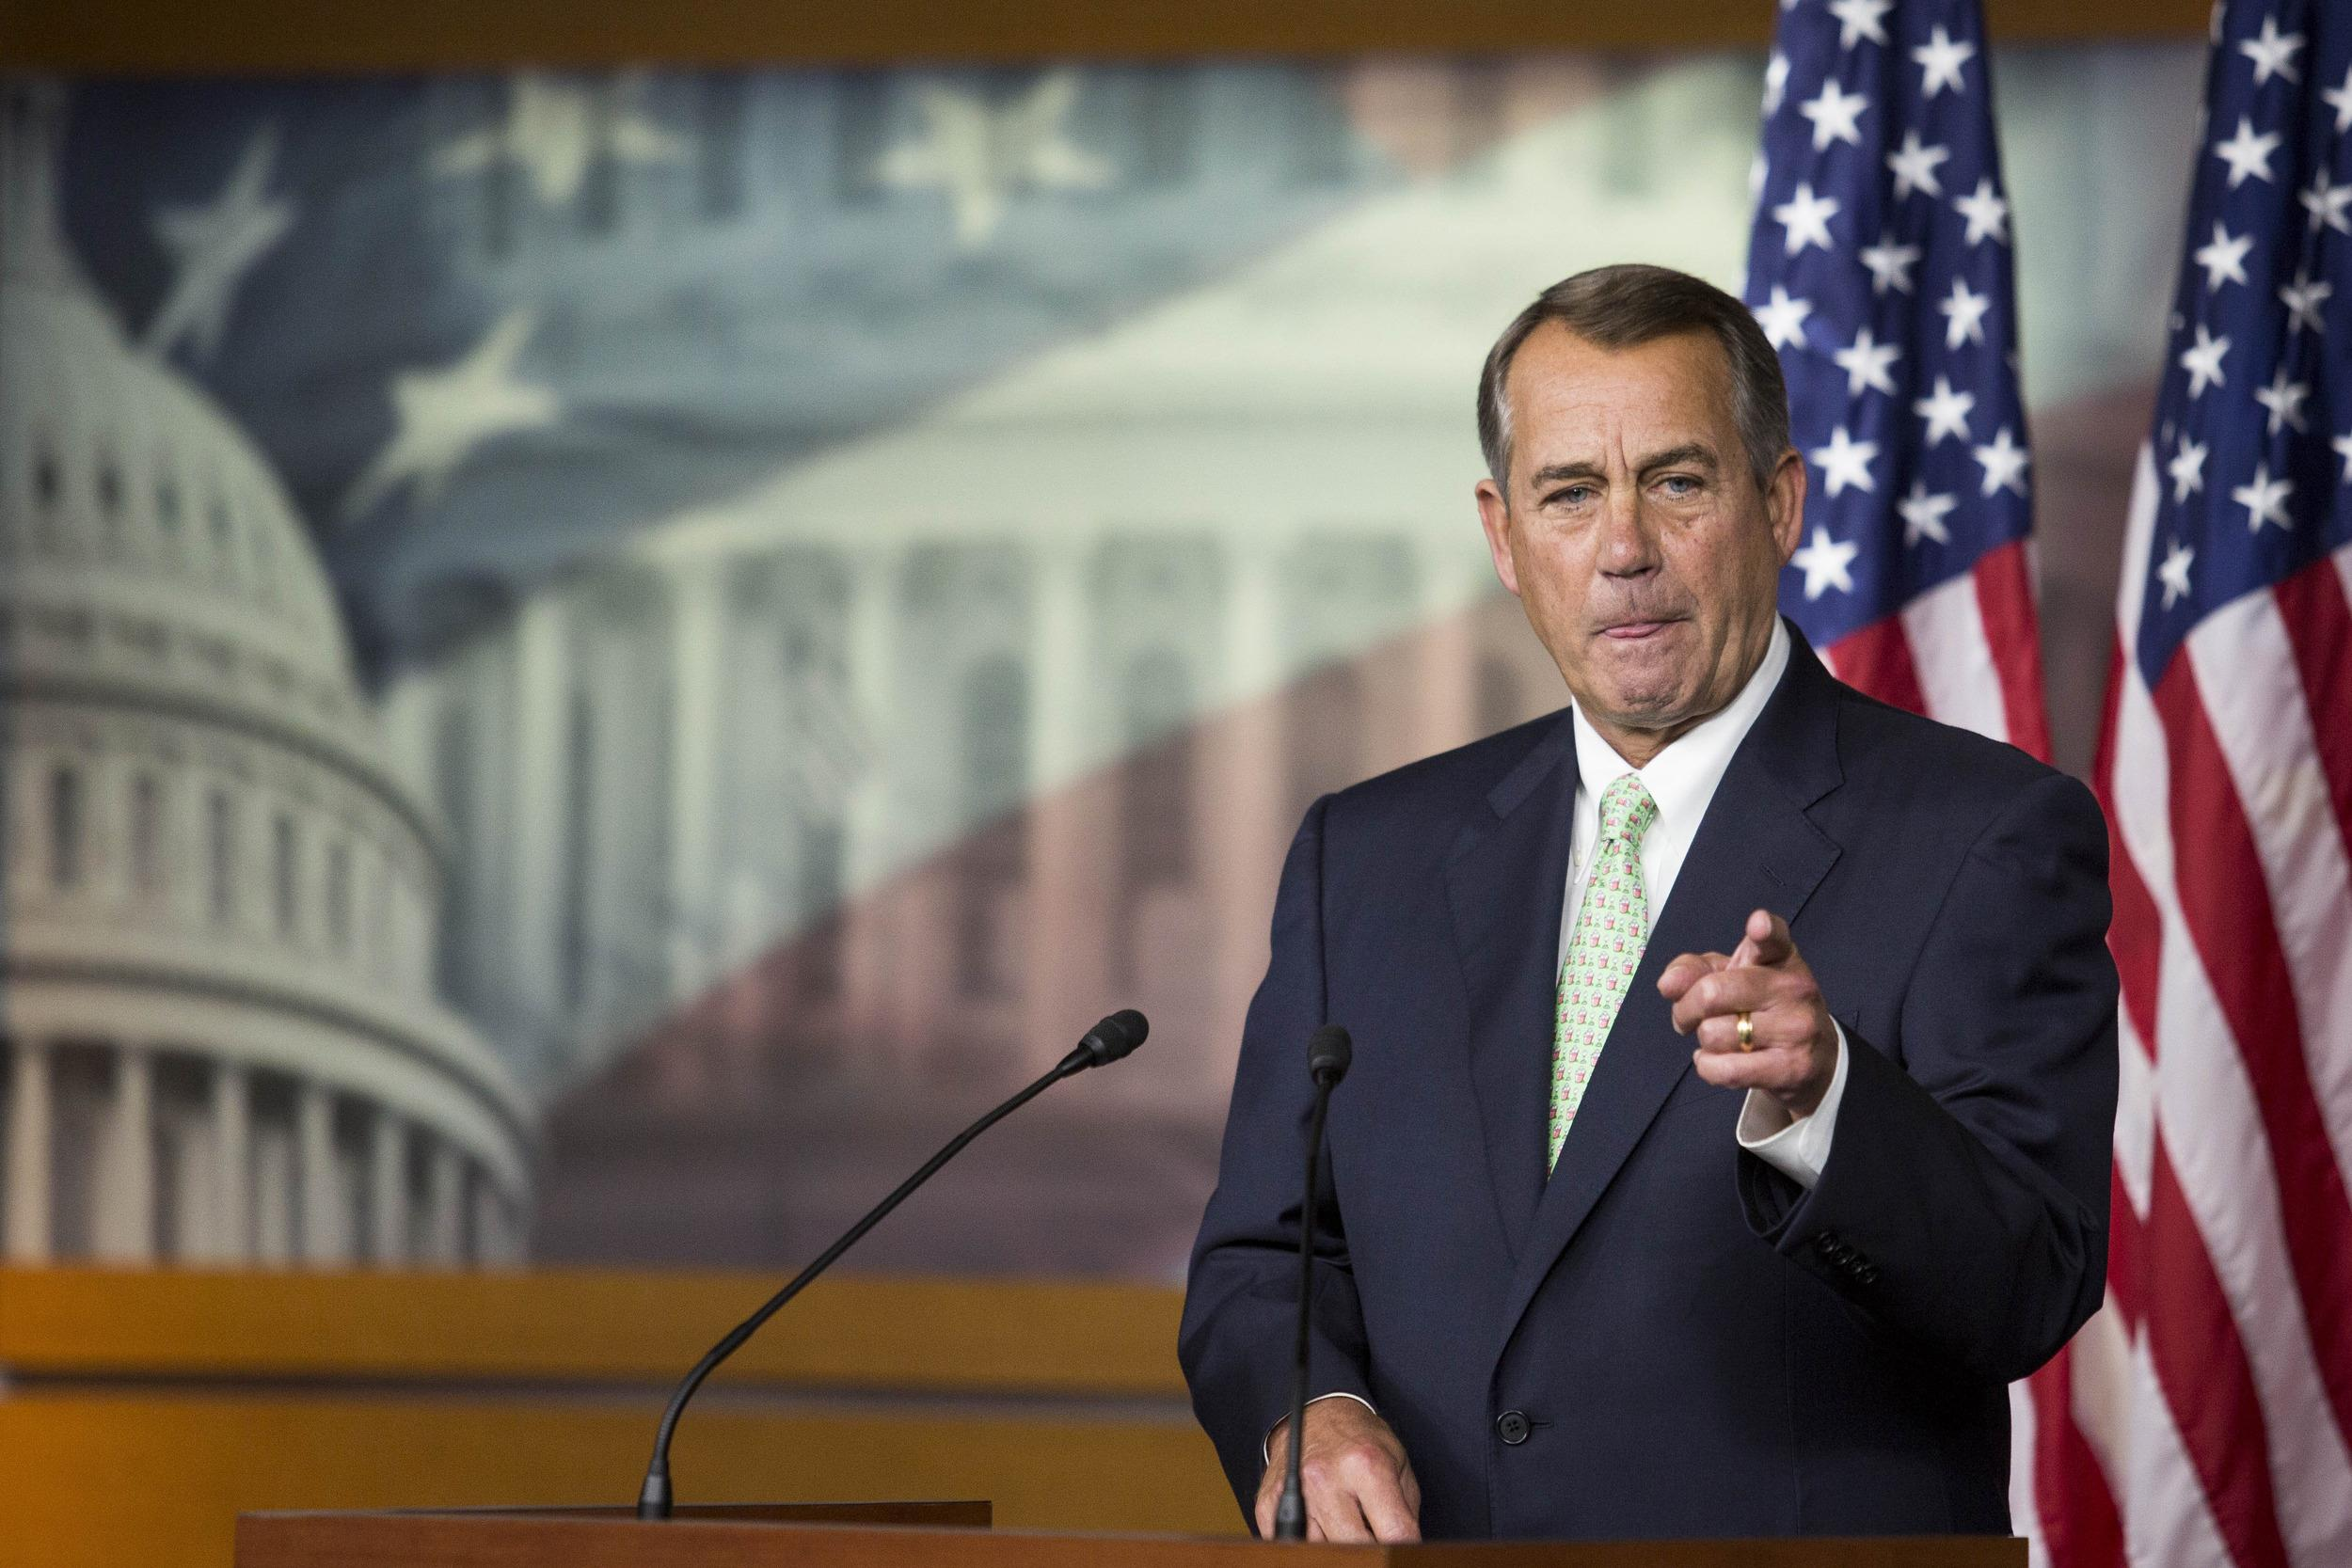 Image: Speaker Boehner Holds His Weekly News Conference